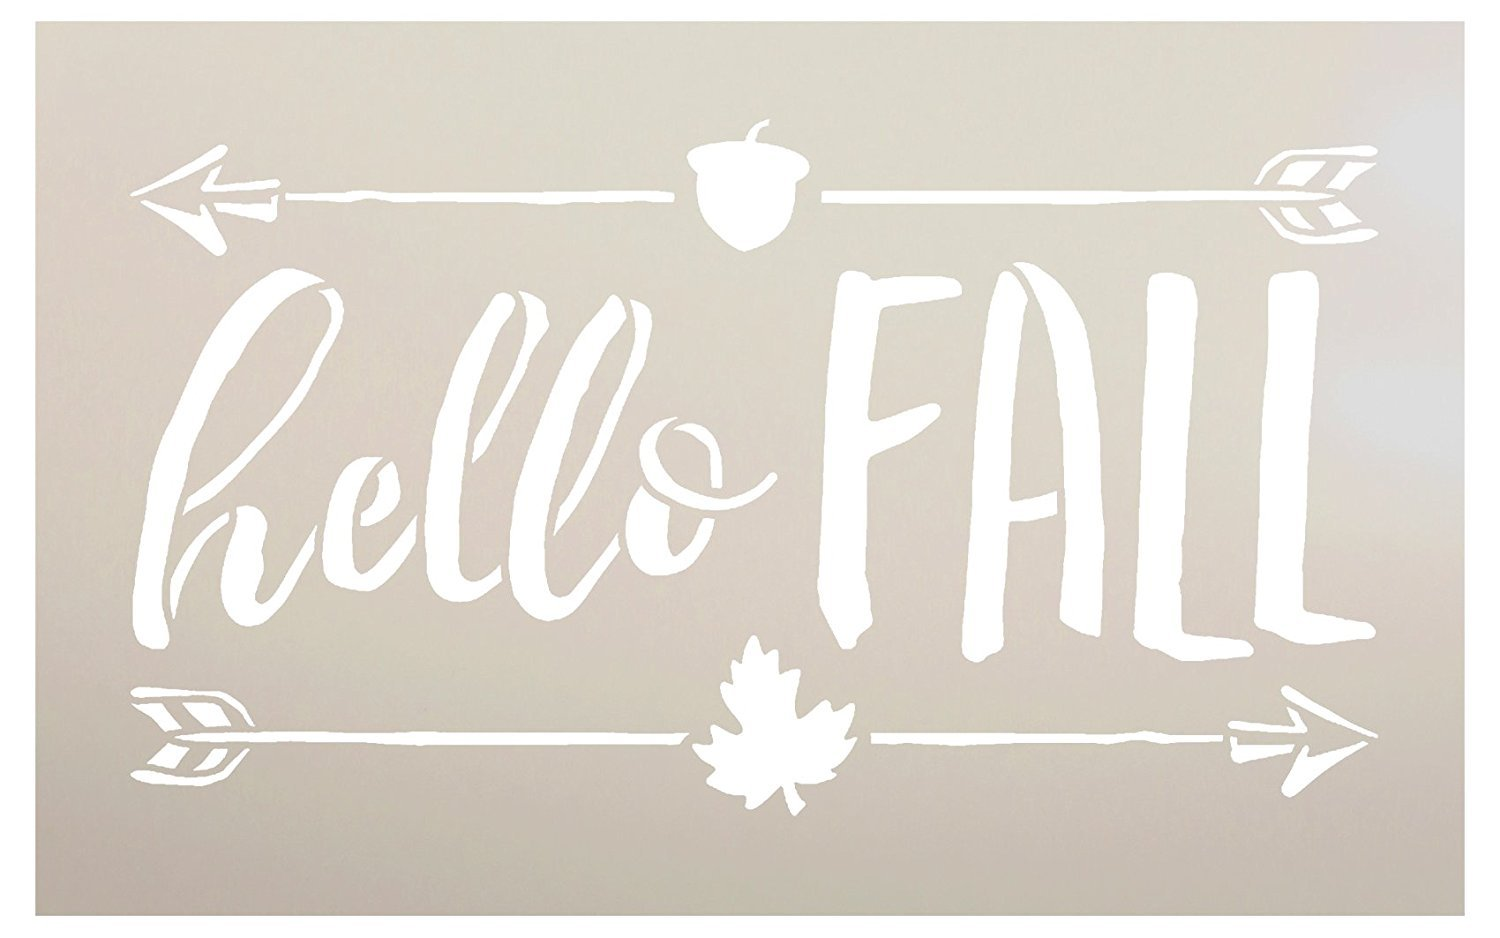 Fall Template Word from i5.walmartimages.com